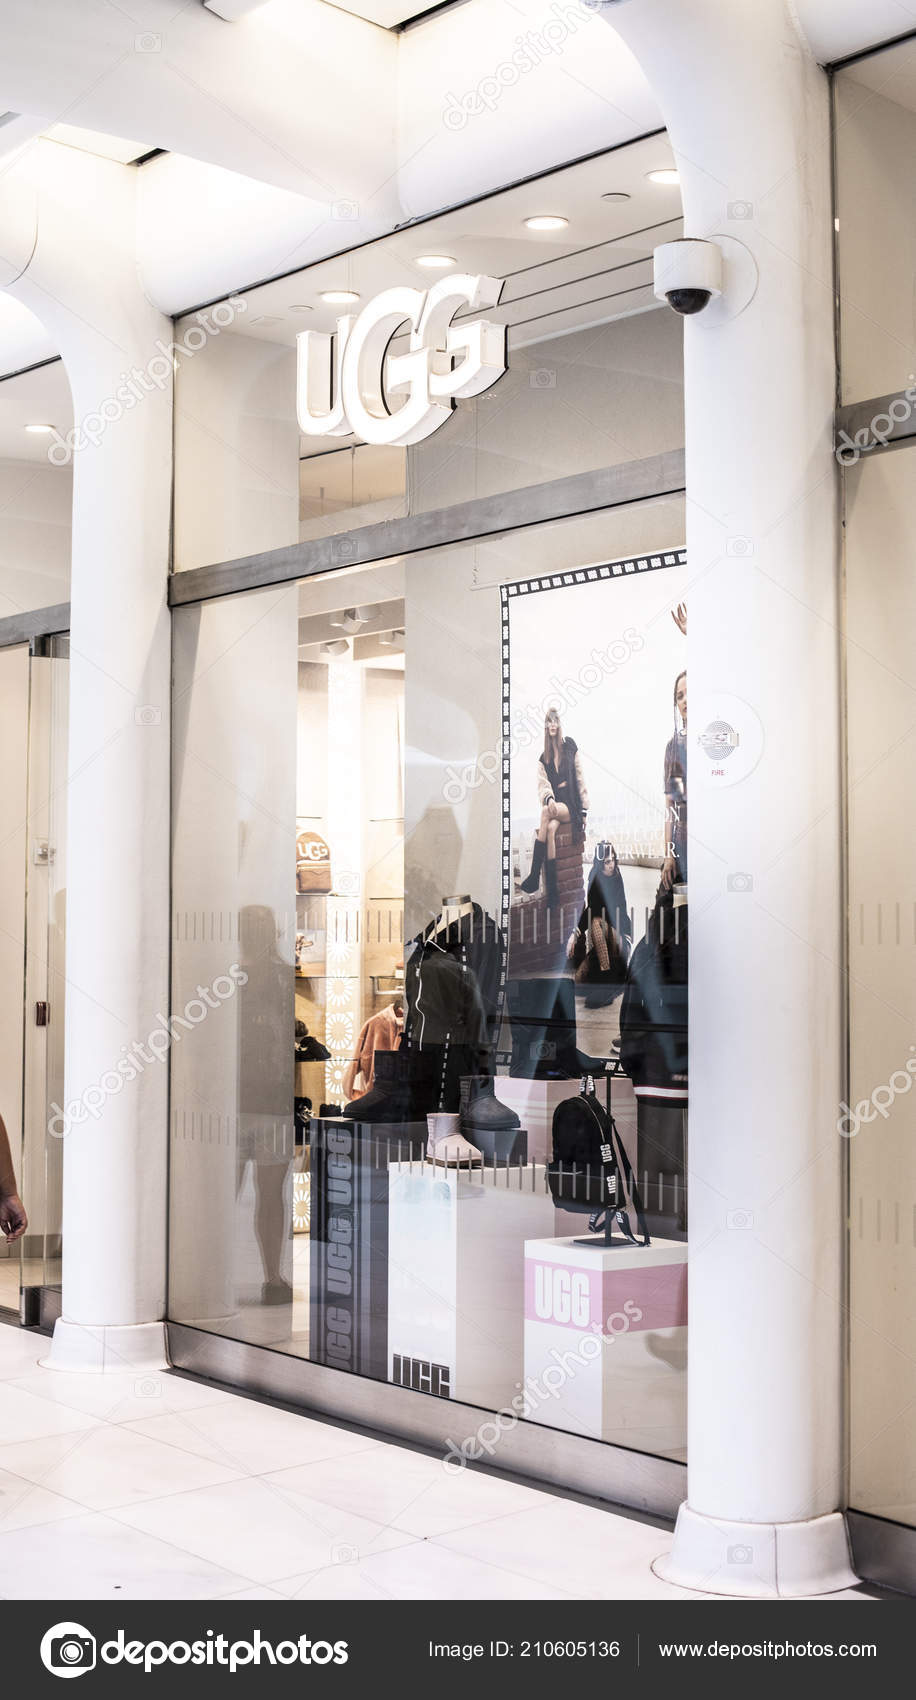 ugg boots store